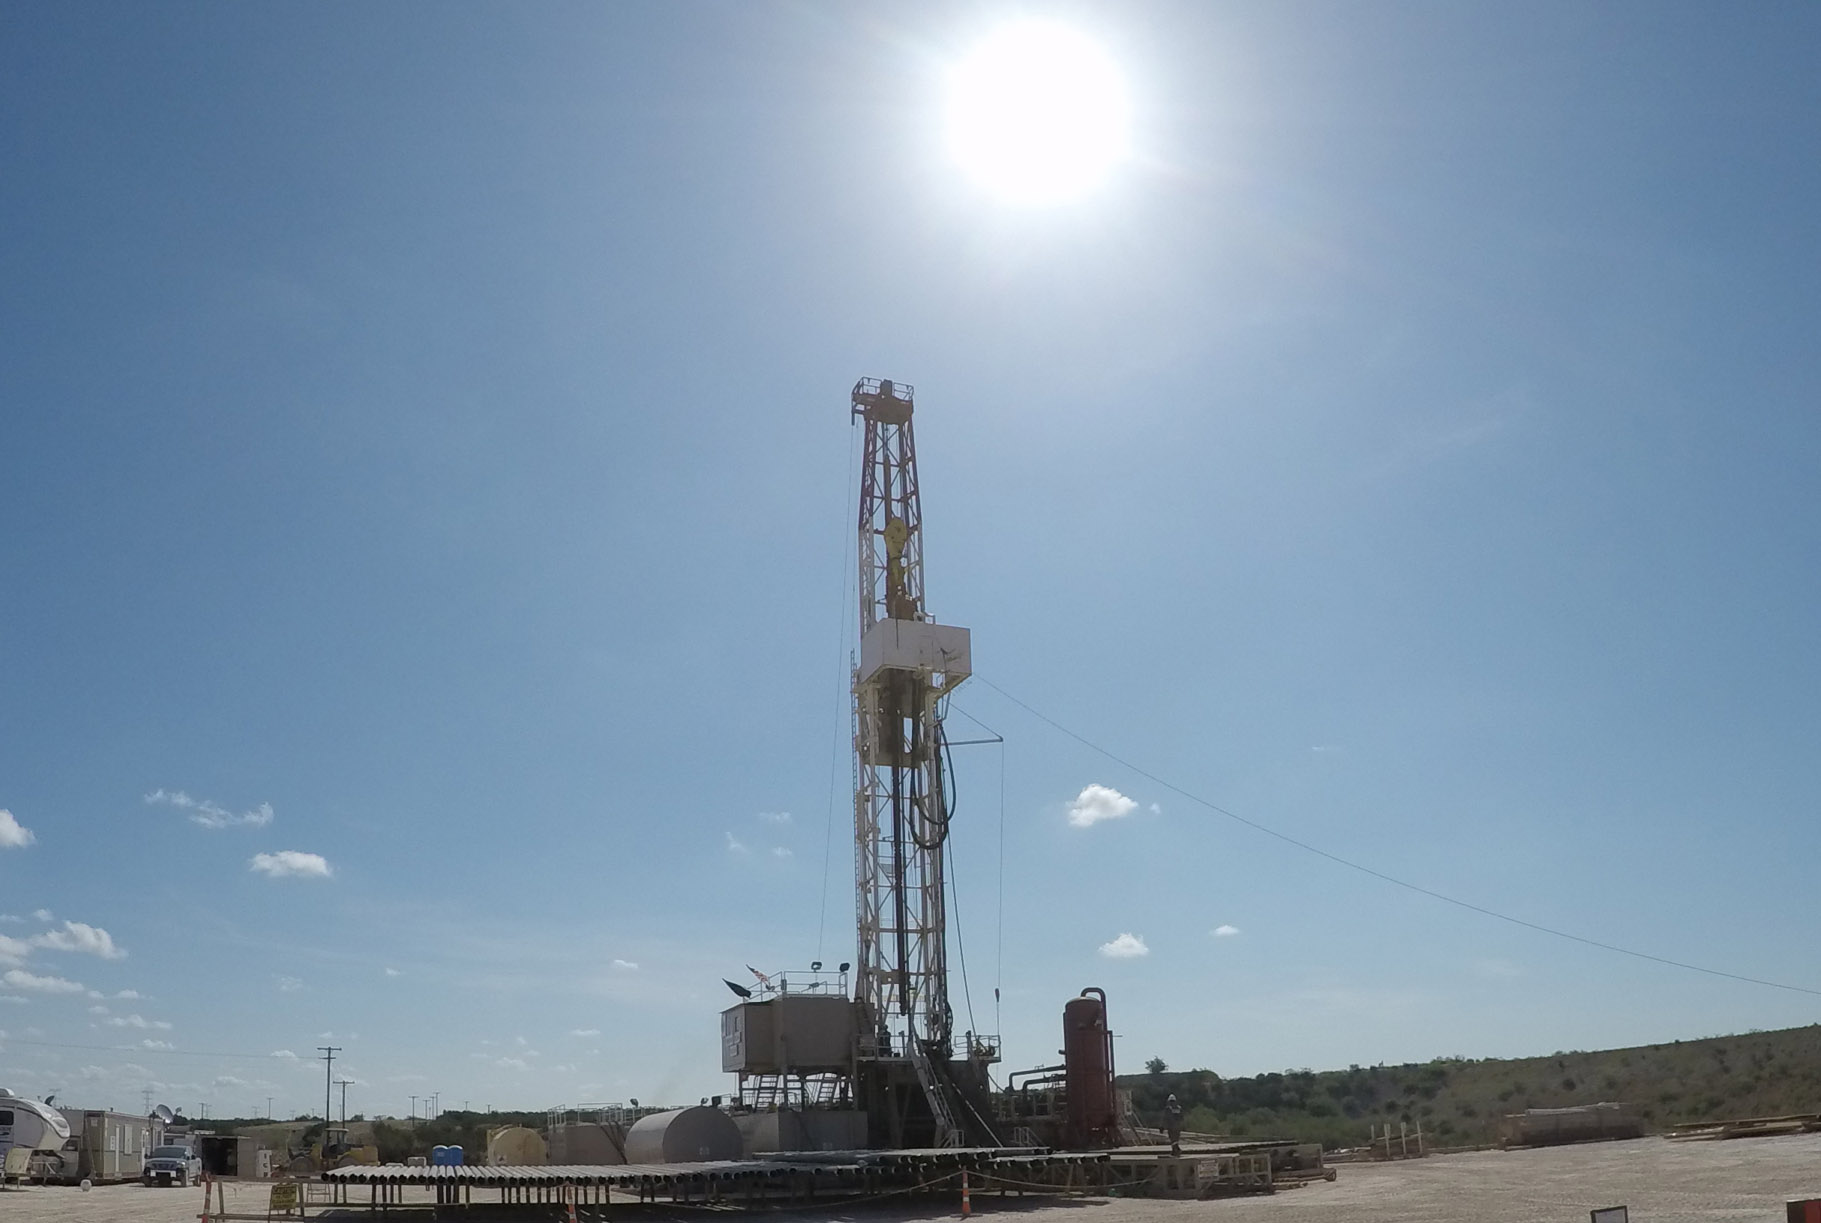 Managed Pressure Drilling Device in Midland, TX